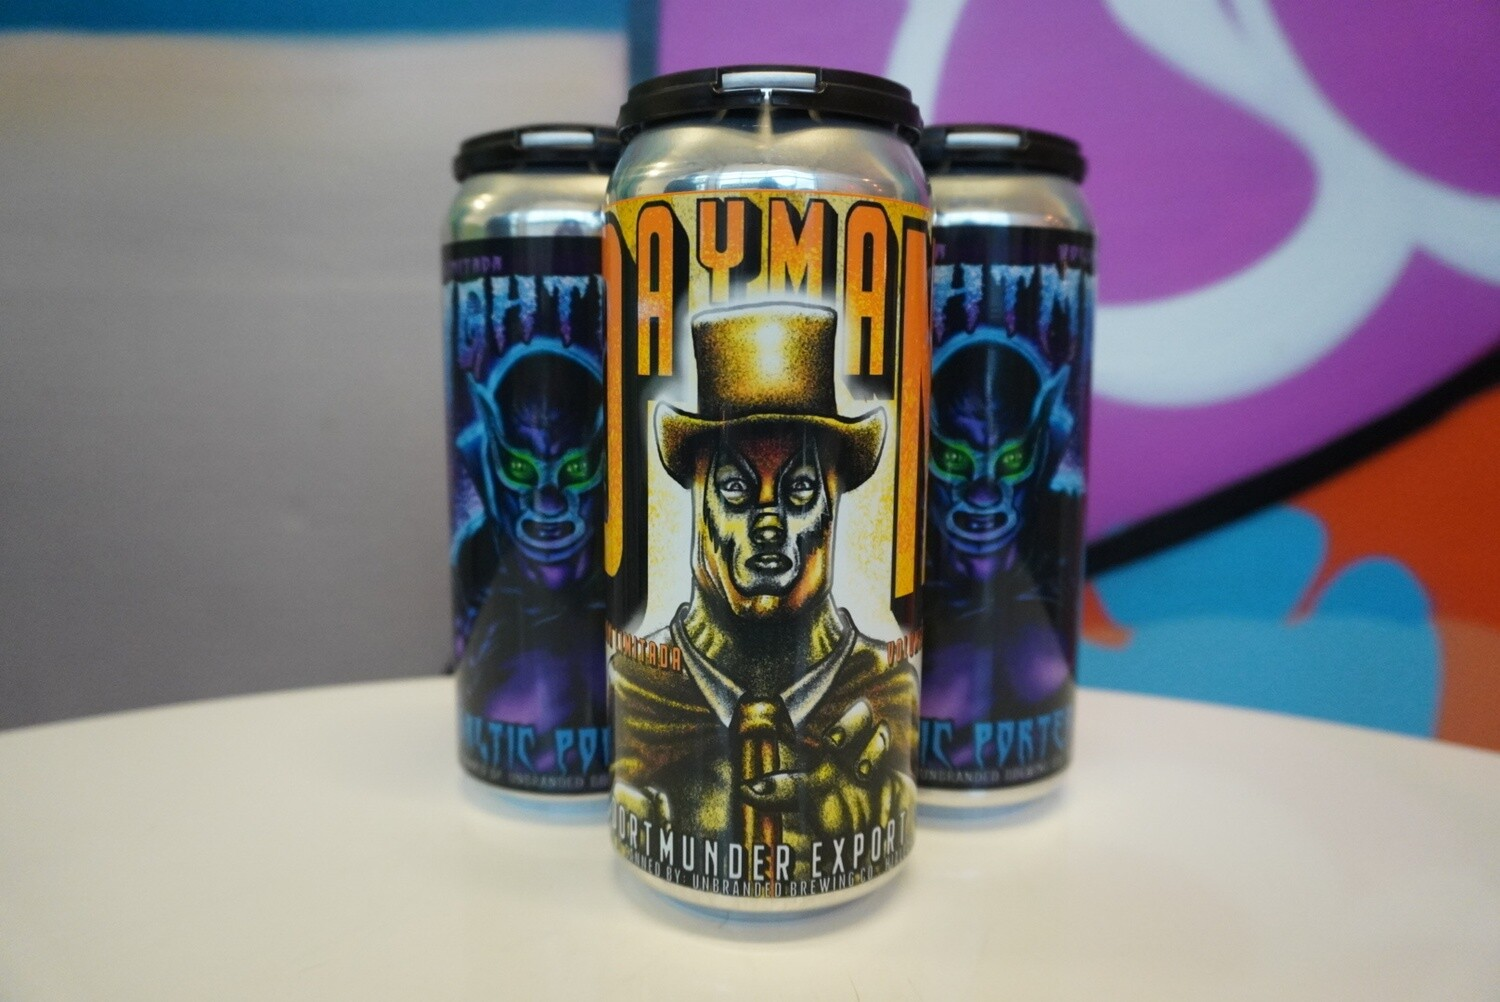 Unbranded Brewing - Dayman & Night Man - Lager and Porter Mixed 4 Pack